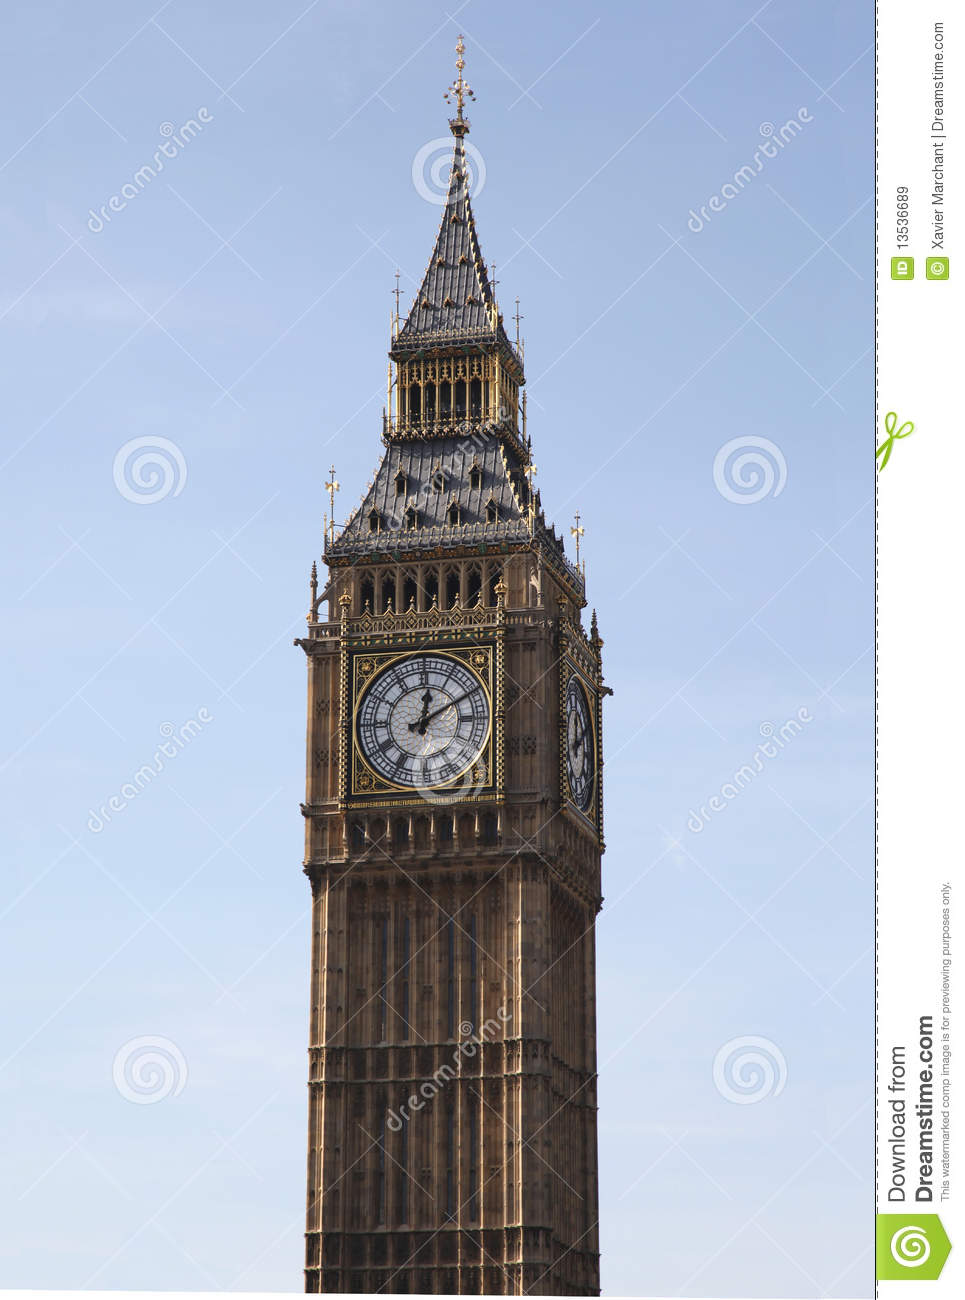 Big Ben Clock Royalty Free Stock Images - Image: 13536689